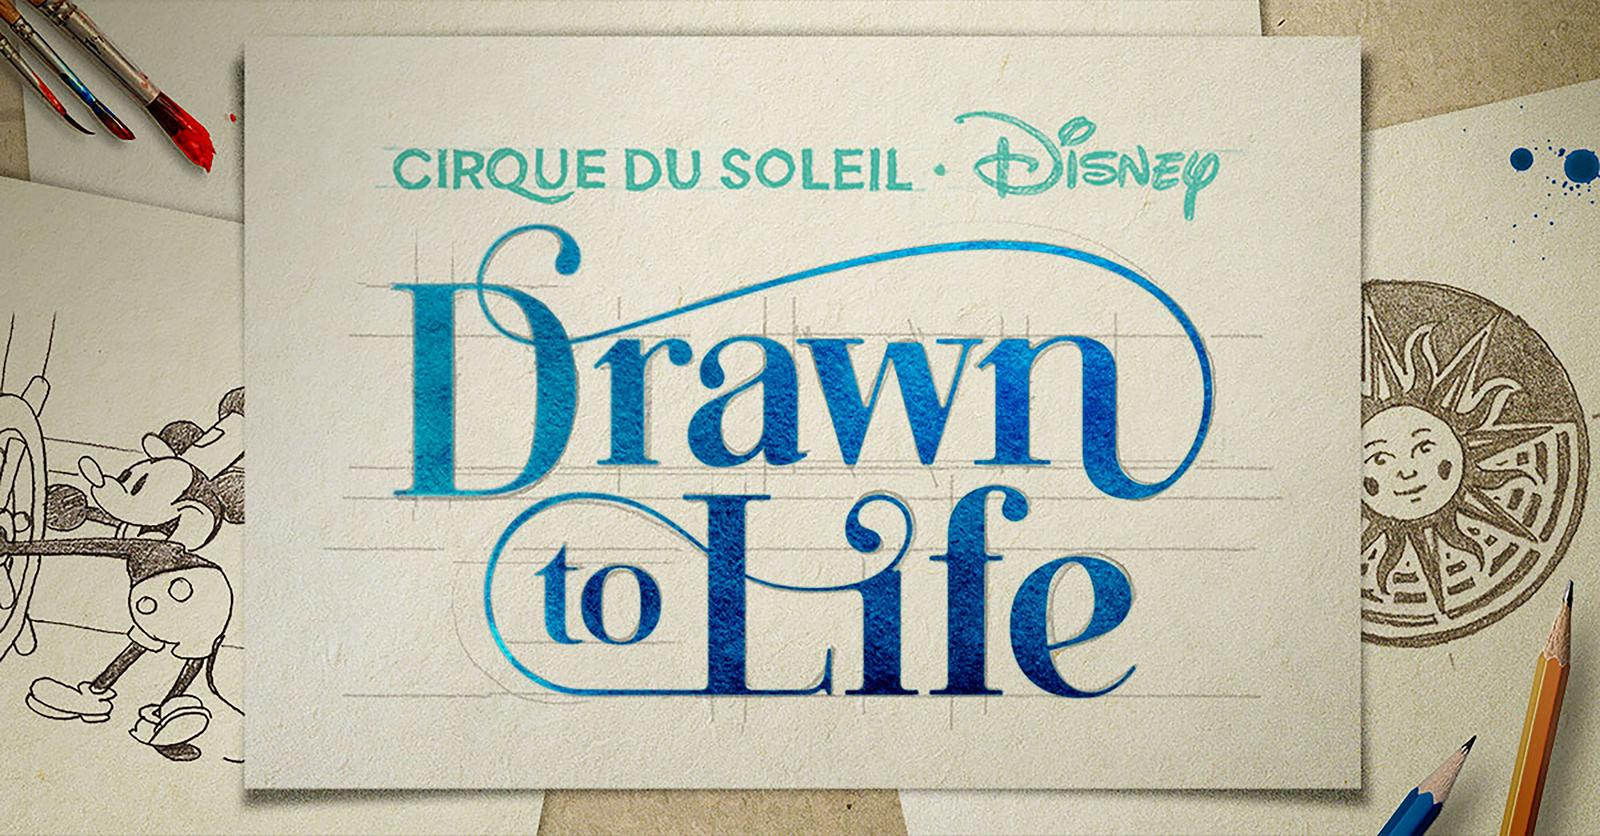 Cirque du Soleil: Drawn To Life Tickets Now Available For 2020